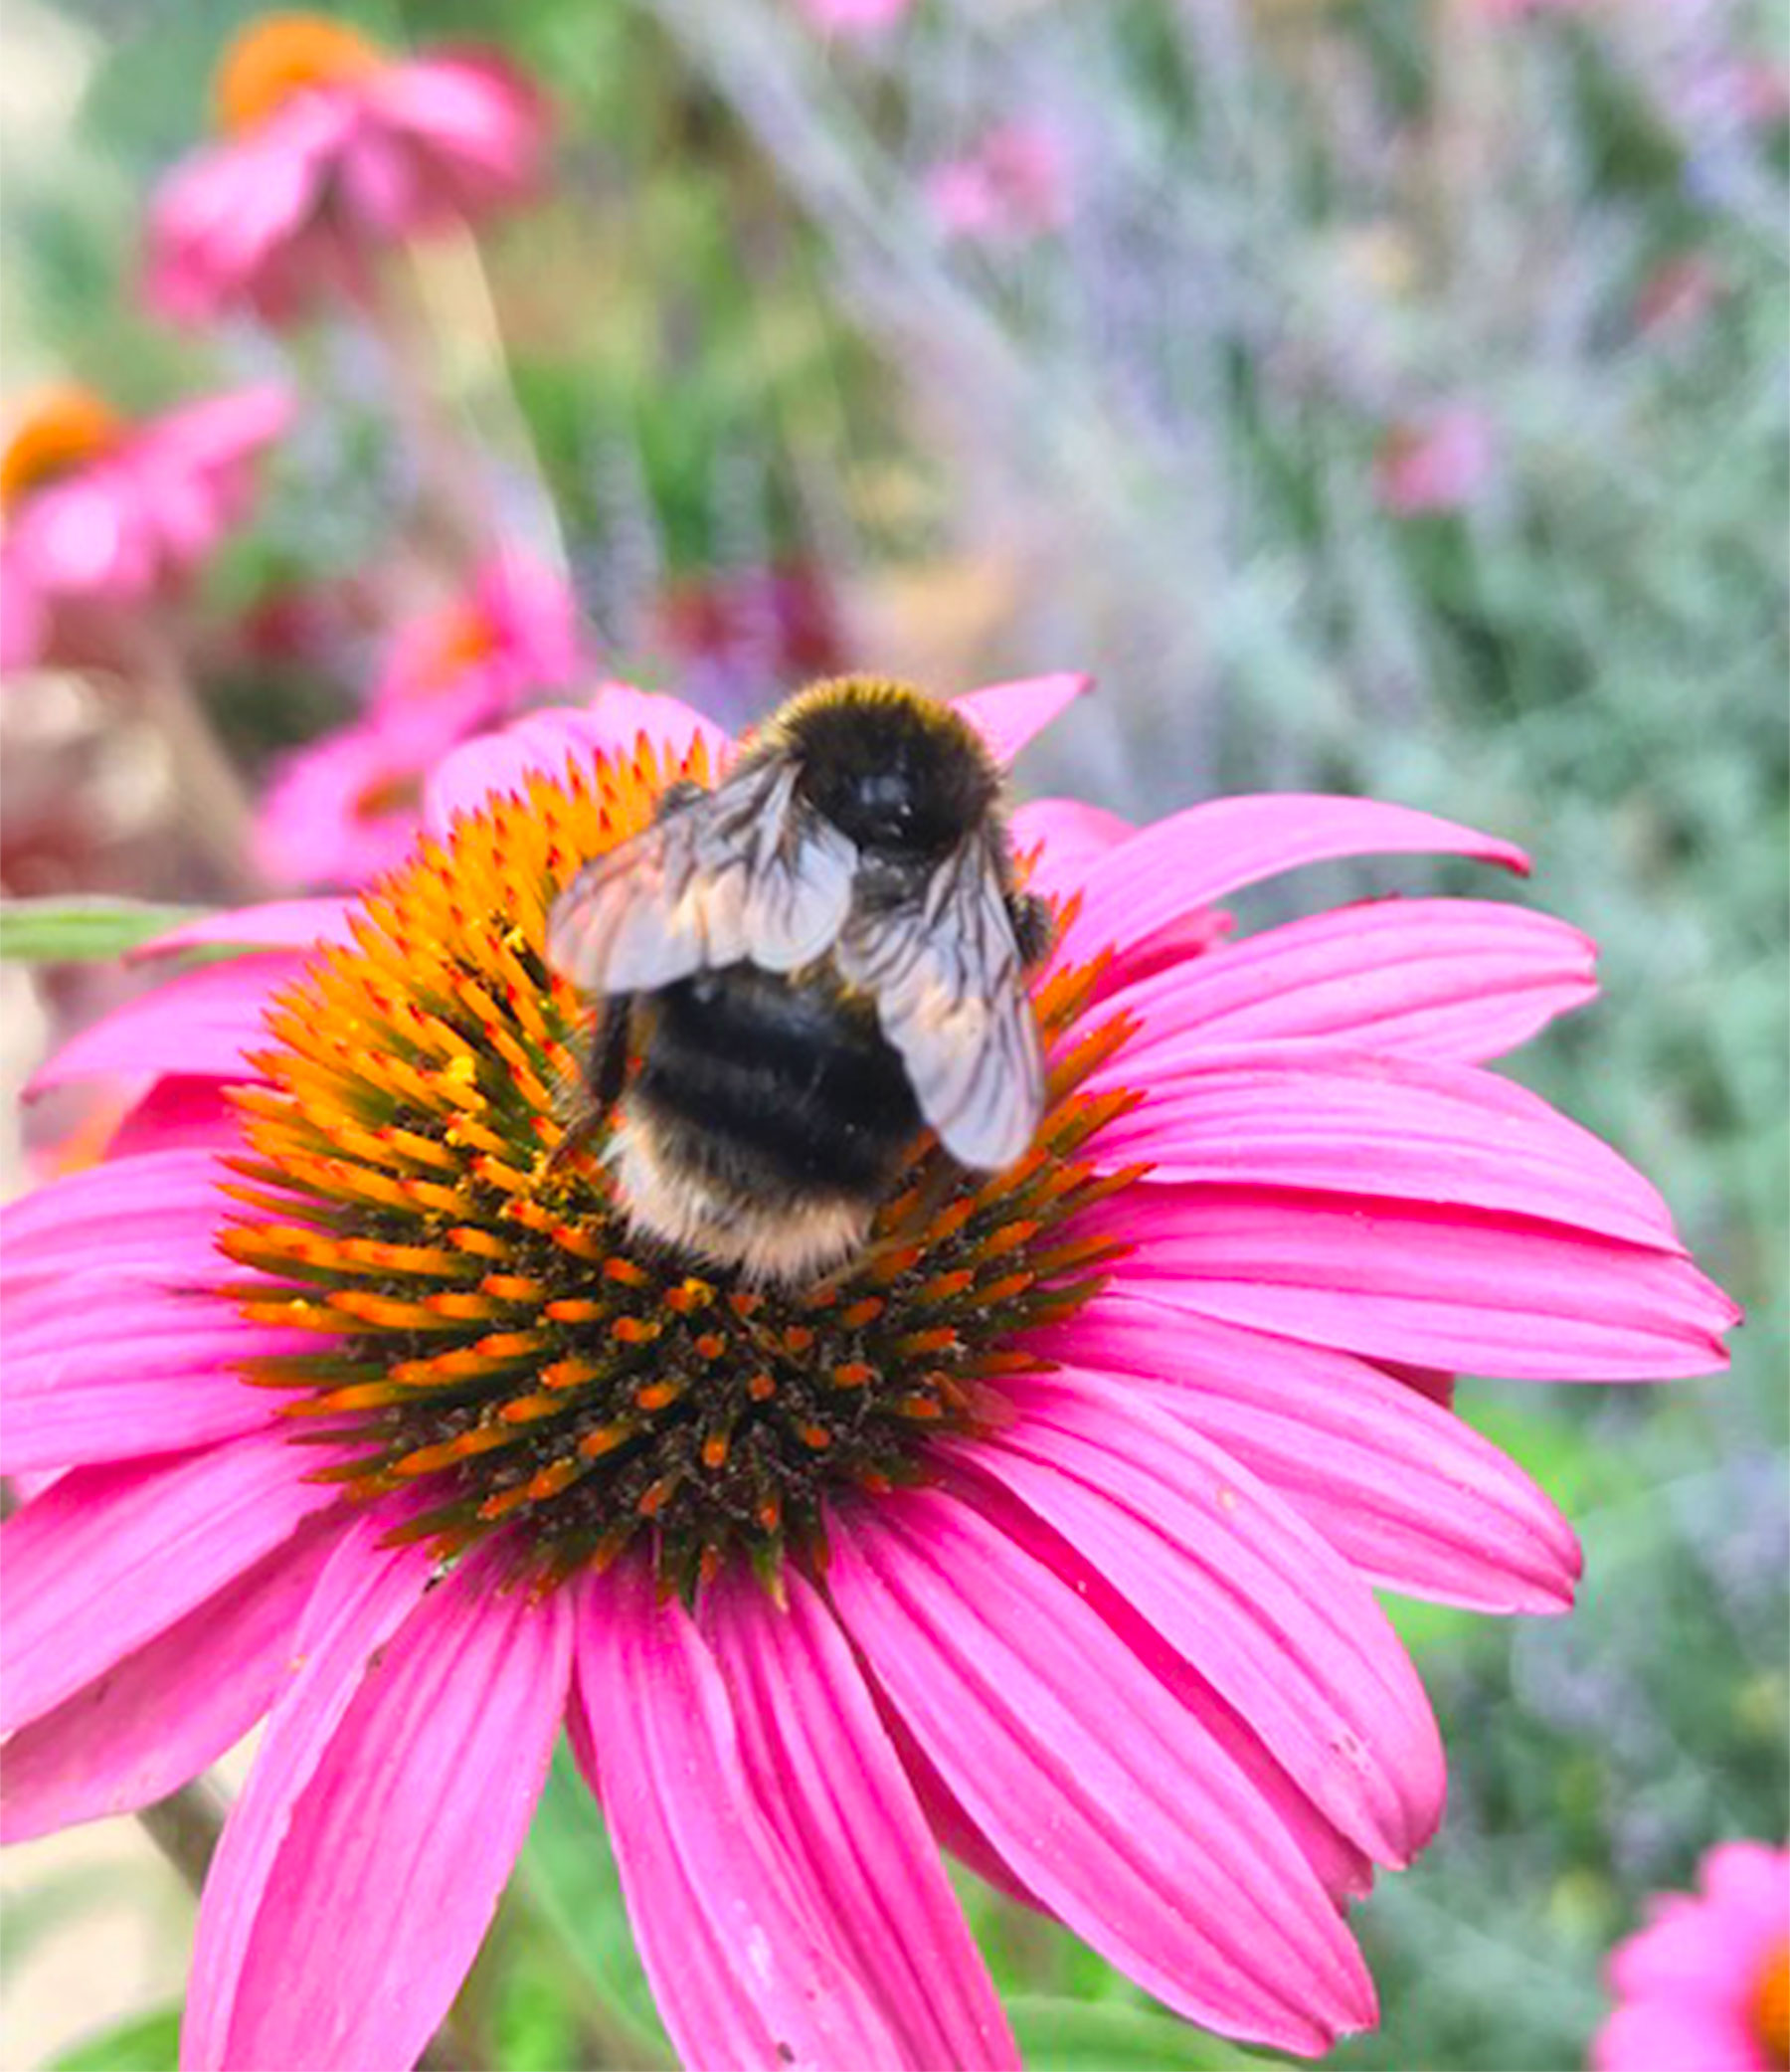 Echinacea-Bumble-Bee_Danielle-Collette-G